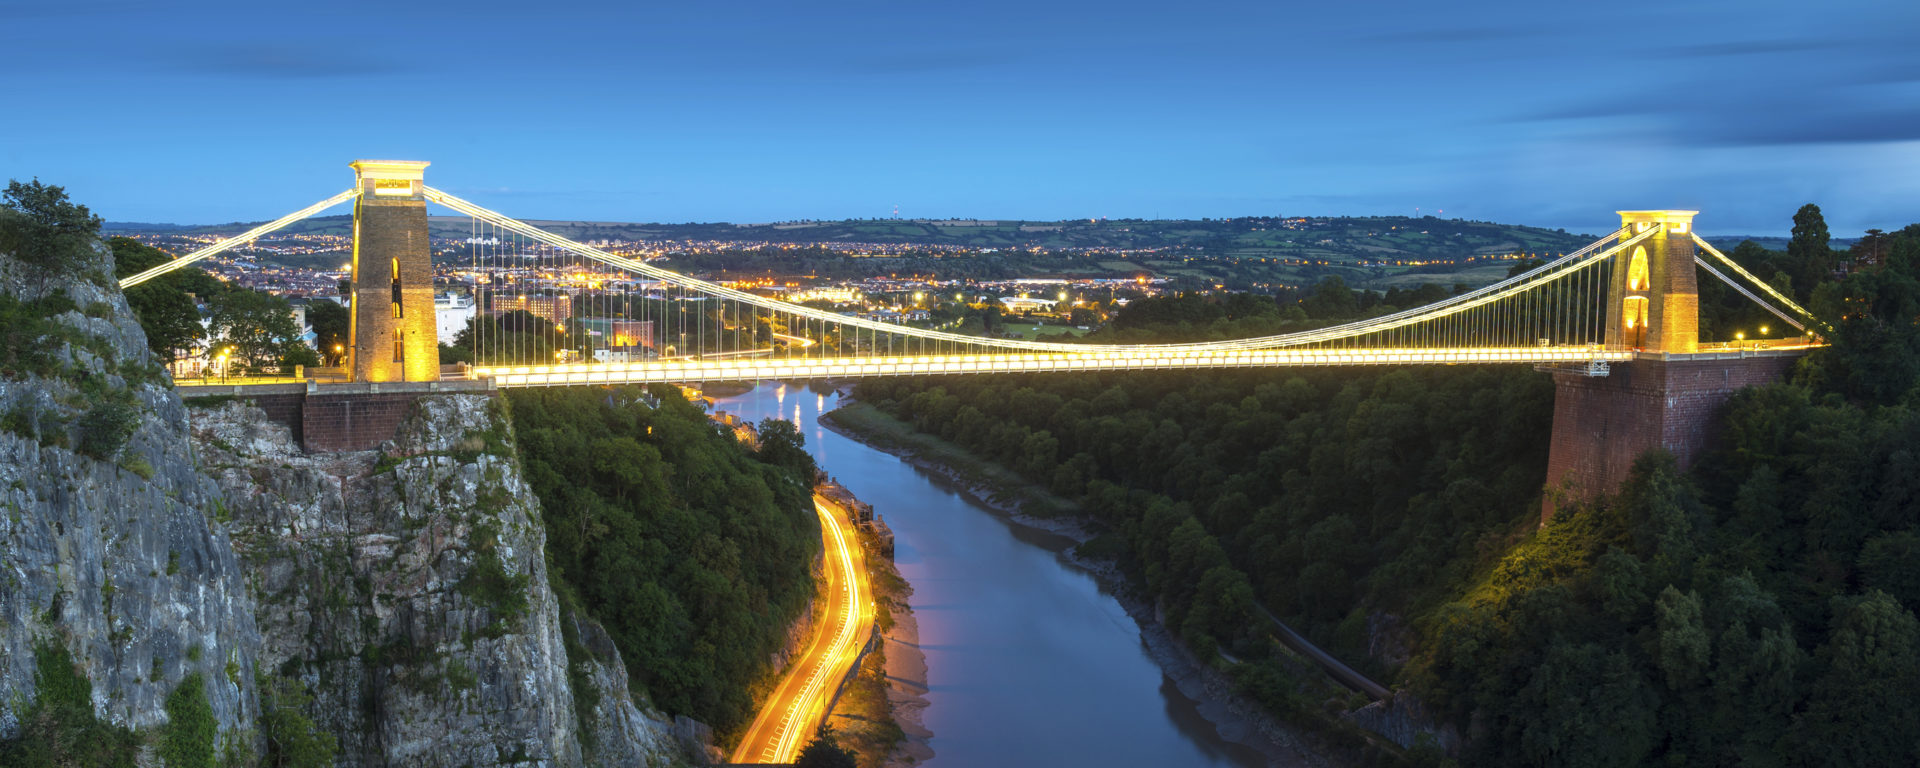 Clifton Suspension Bridge, River Avon, Bristol, England